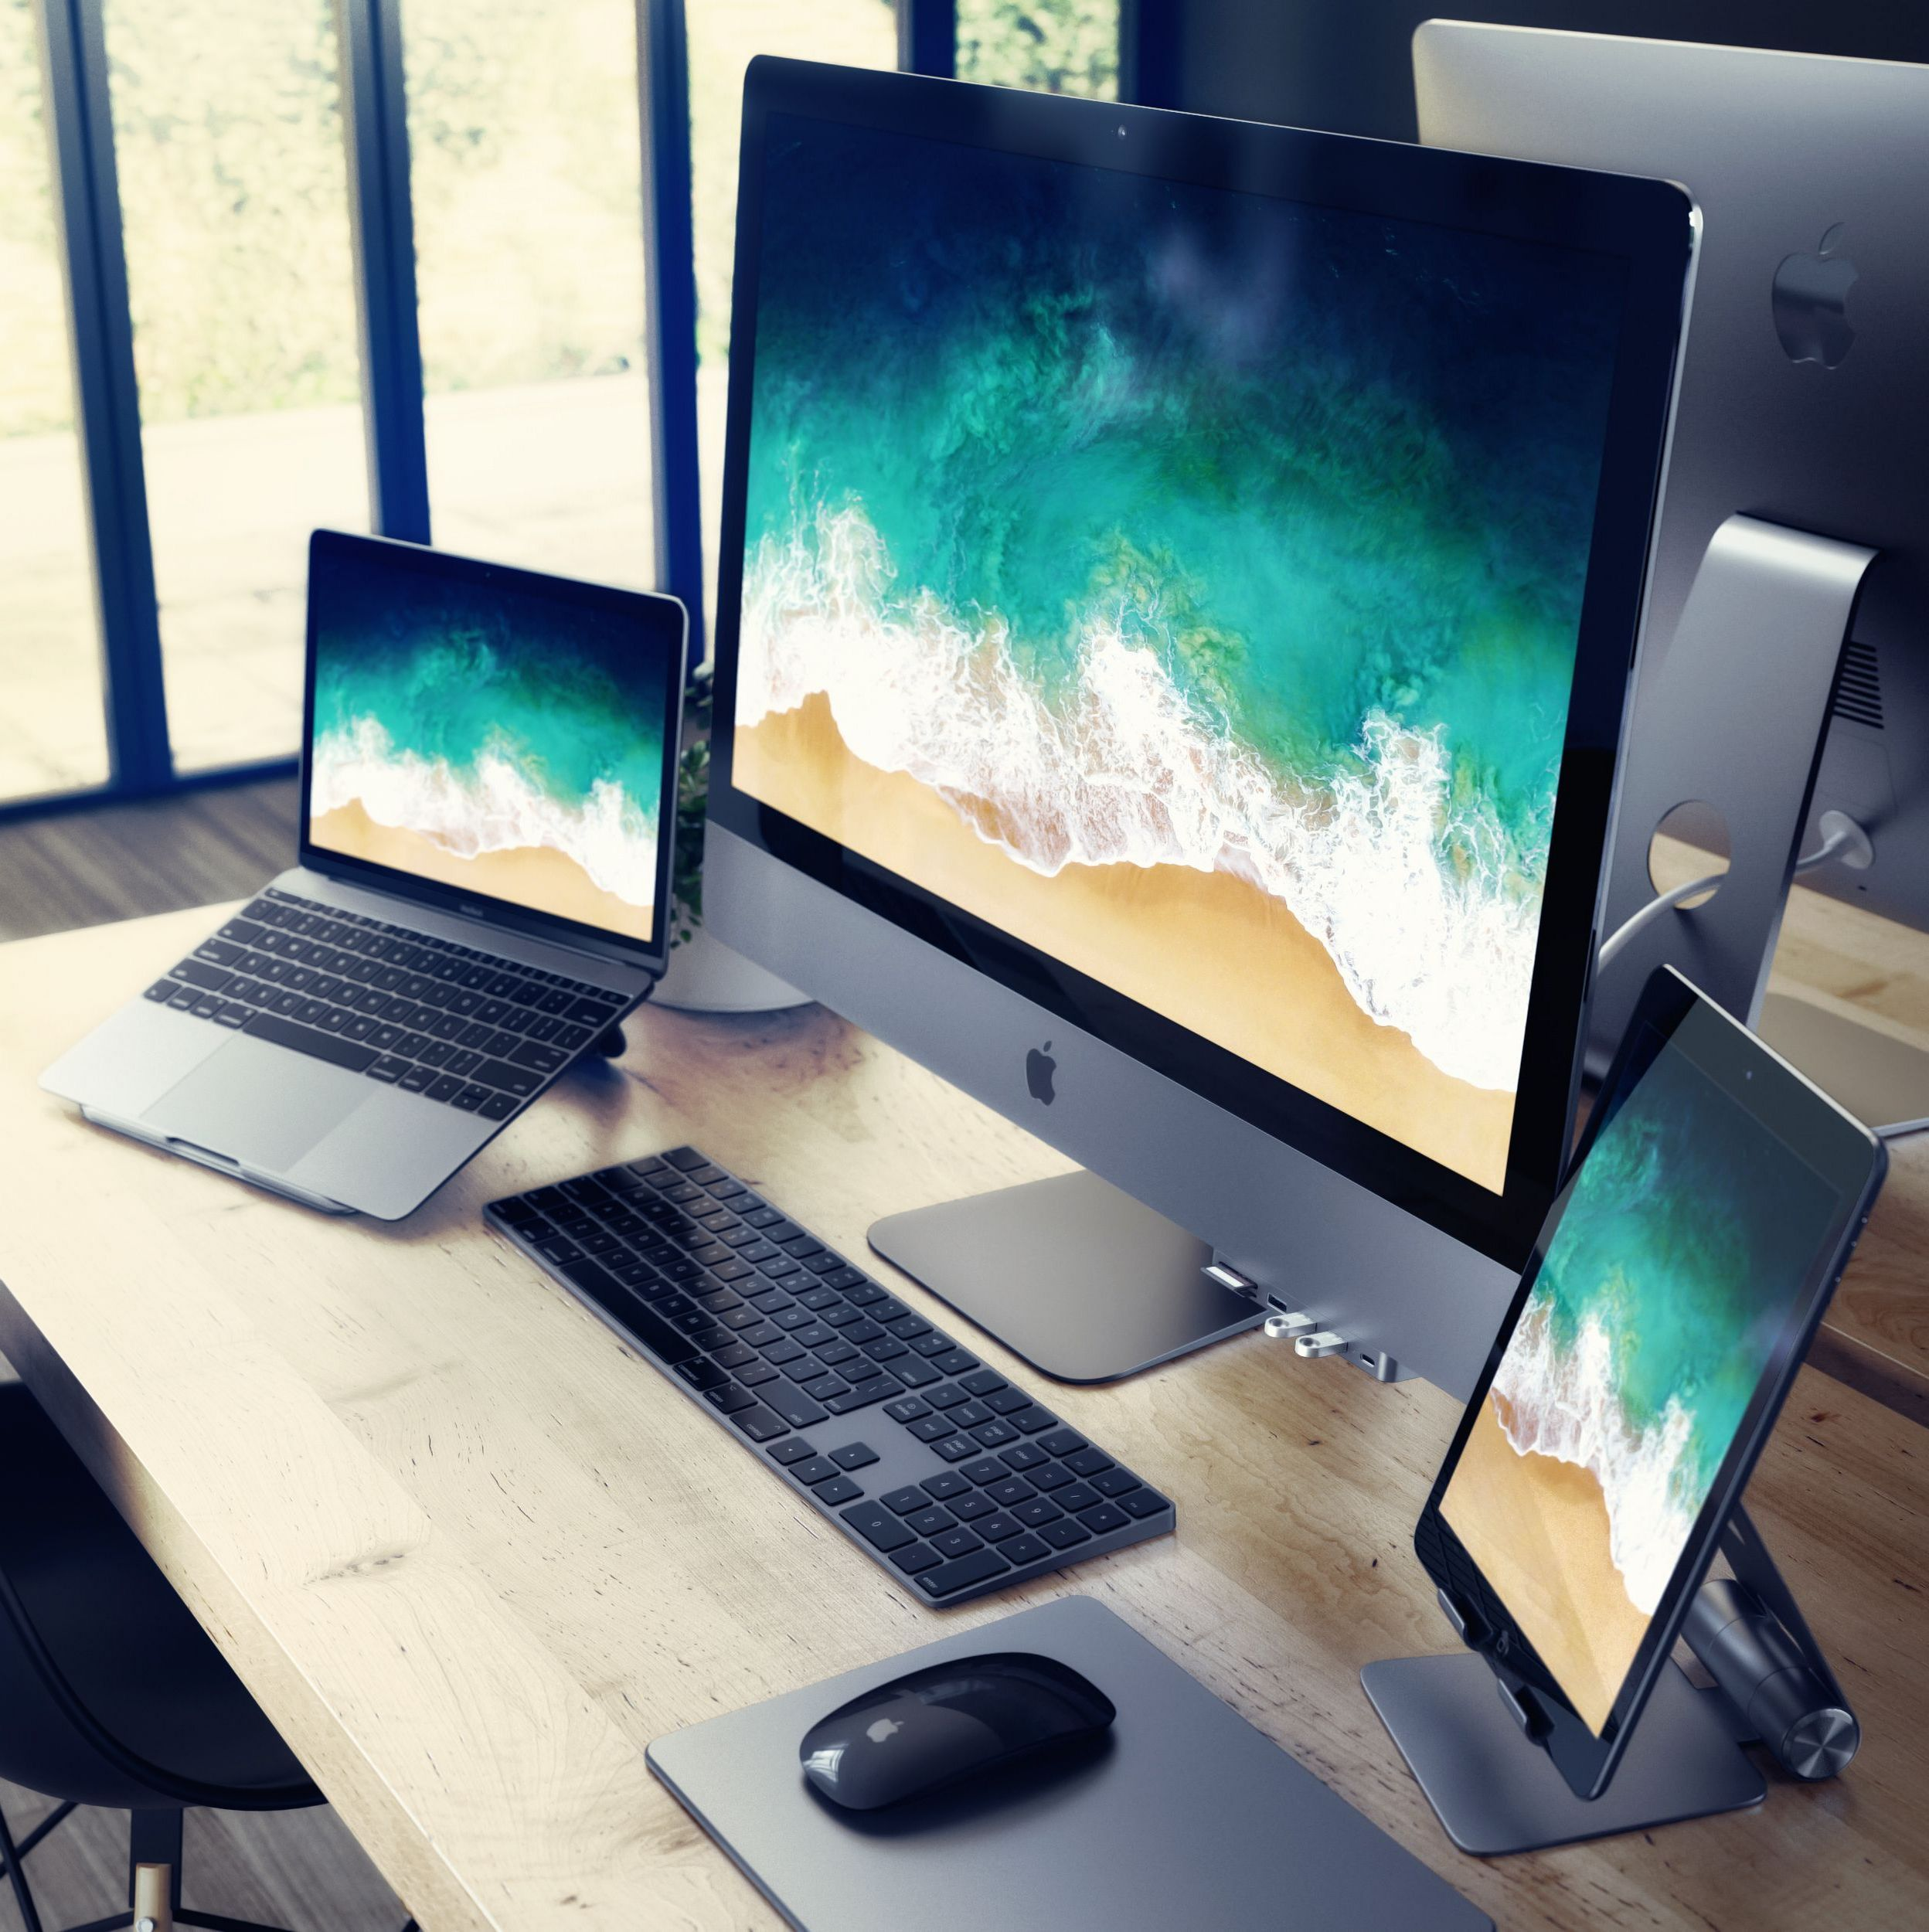 Apple S Latest Imacs Are Fast And Familiar Imac Desk Setup Computer Desk Setup Office Setup